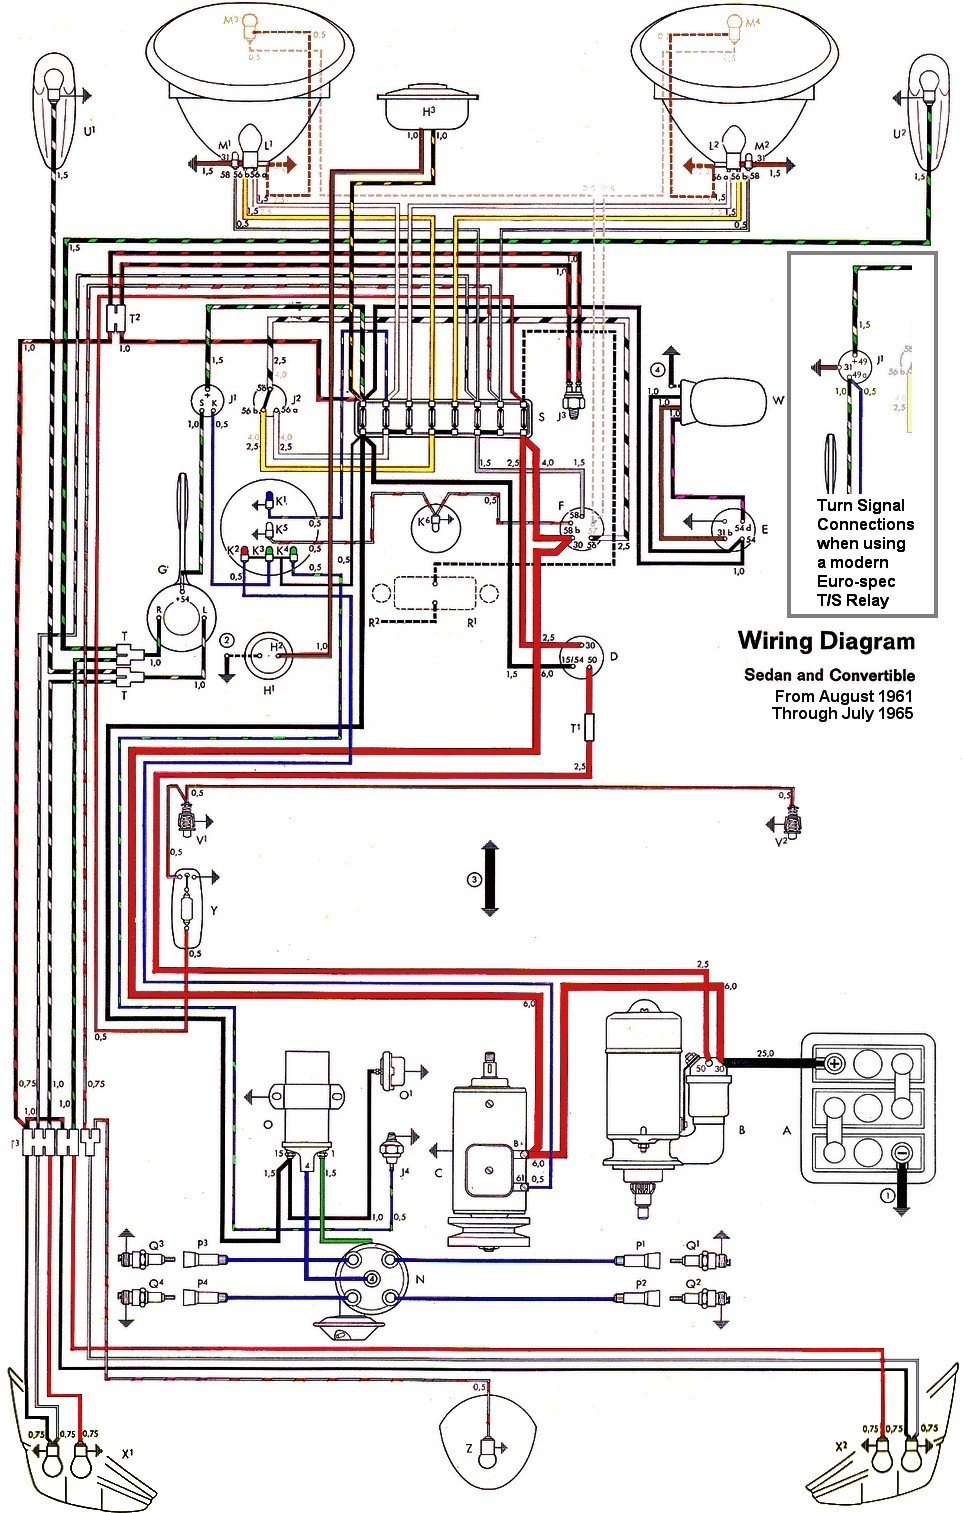 TheSamba.com :: Type 1 Wiring Diagrams on volkswagen fuse diagram, volkswagen relay diagram, volkswagen chassis, volkswagen engine diagram, volkswagen clutch diagram, volkswagen fuse chart, volkswagen air conditioning, volkswagen charging system diagram, volkswagen transaxle diagram, volkswagen ignition diagram, volkswagen fuel diagram, volkswagen brakes diagram, volkswagen firing order, volkswagen torque specs, volkswagen oil diagram, volkswagen key diagram, volkswagen vacuum diagram, volkswagen electrical system, volkswagen r400,